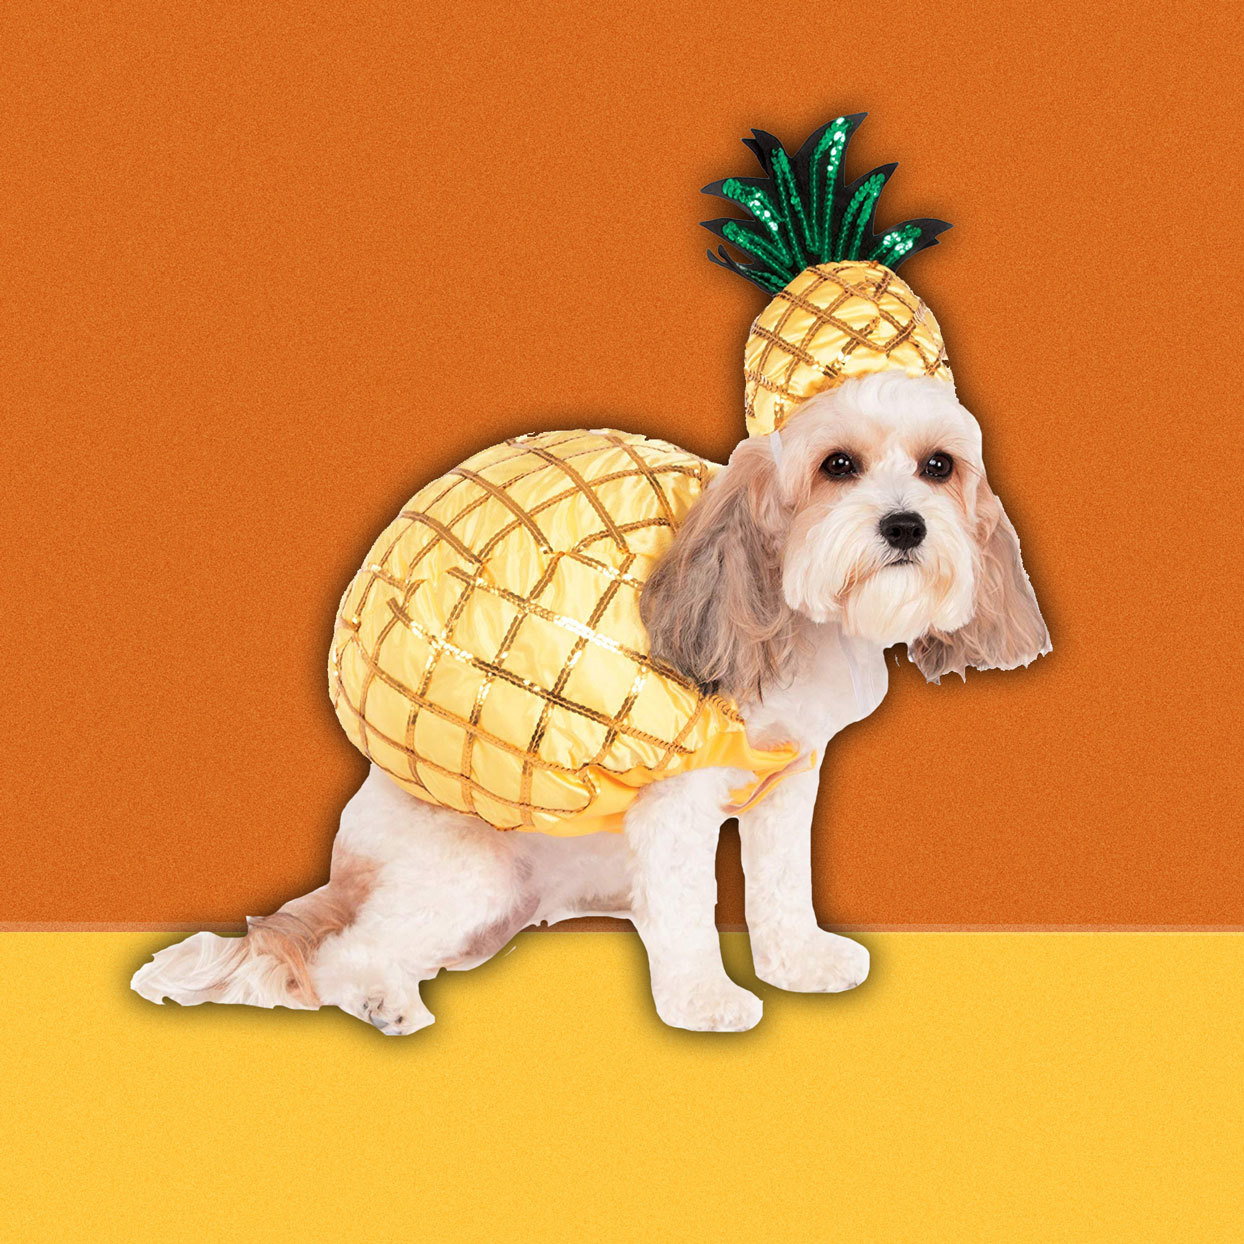 dog wearing a pineapple costume